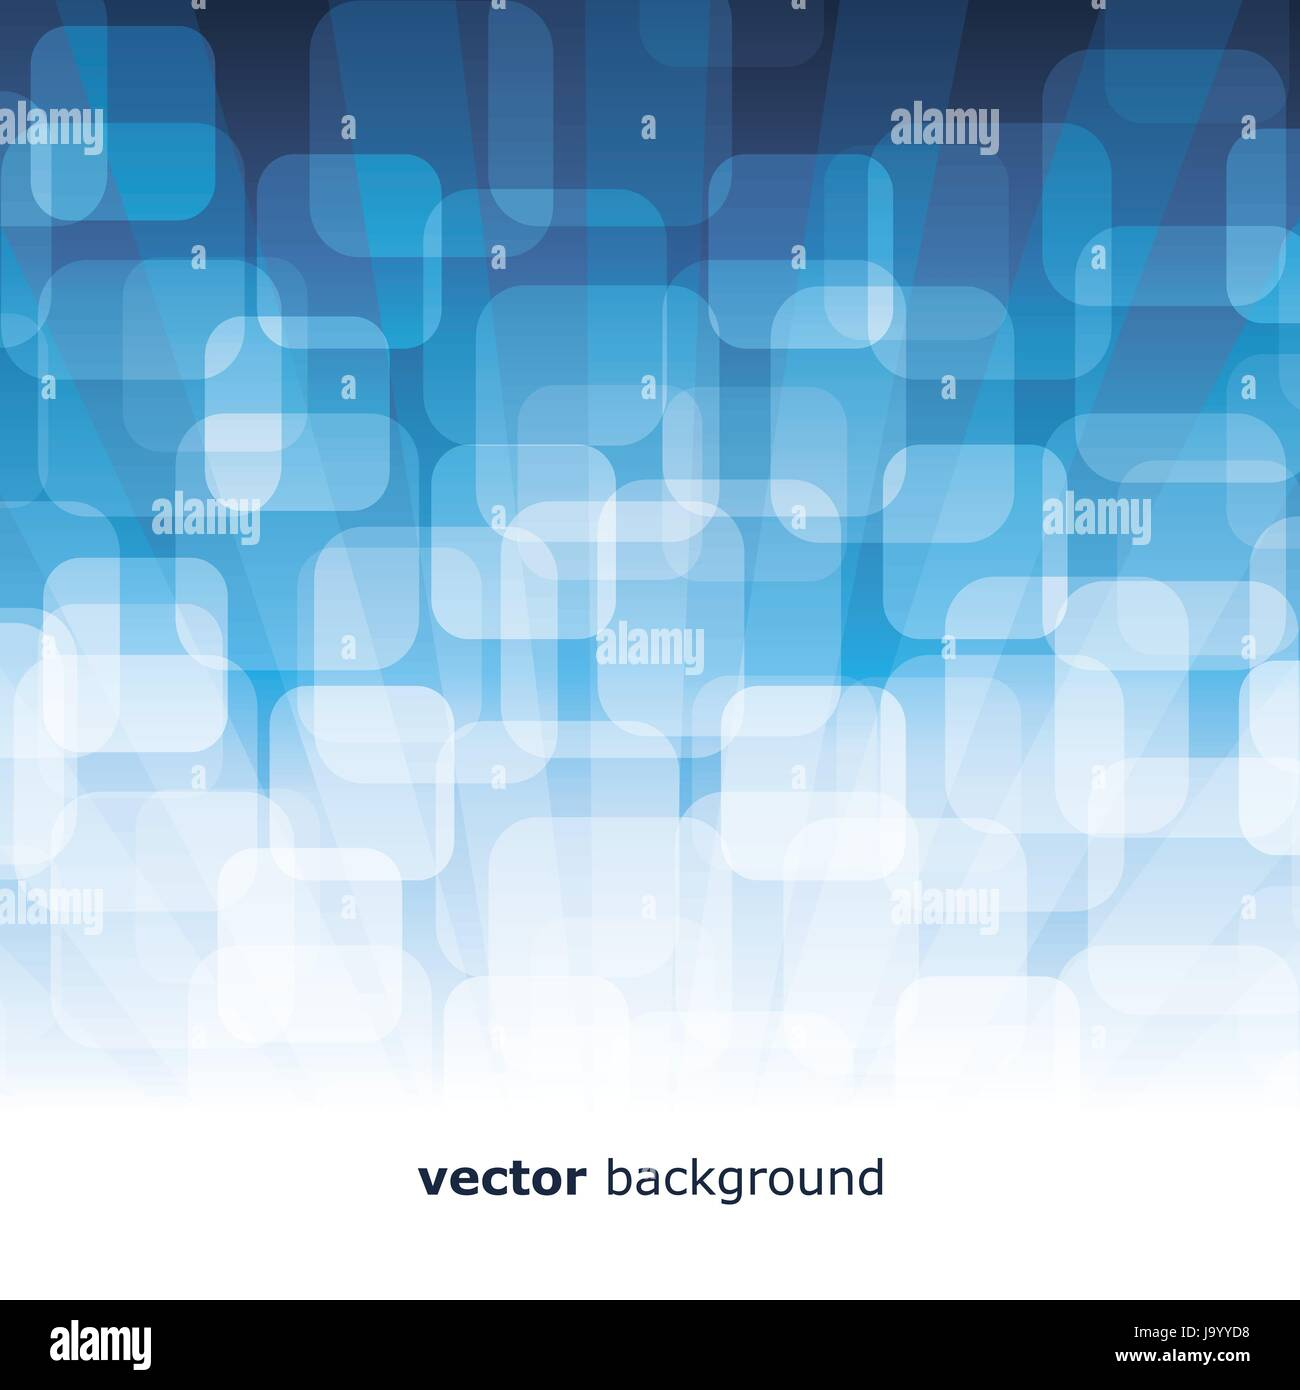 Vector 3D Warped Squares On Blue Background Stock Vector